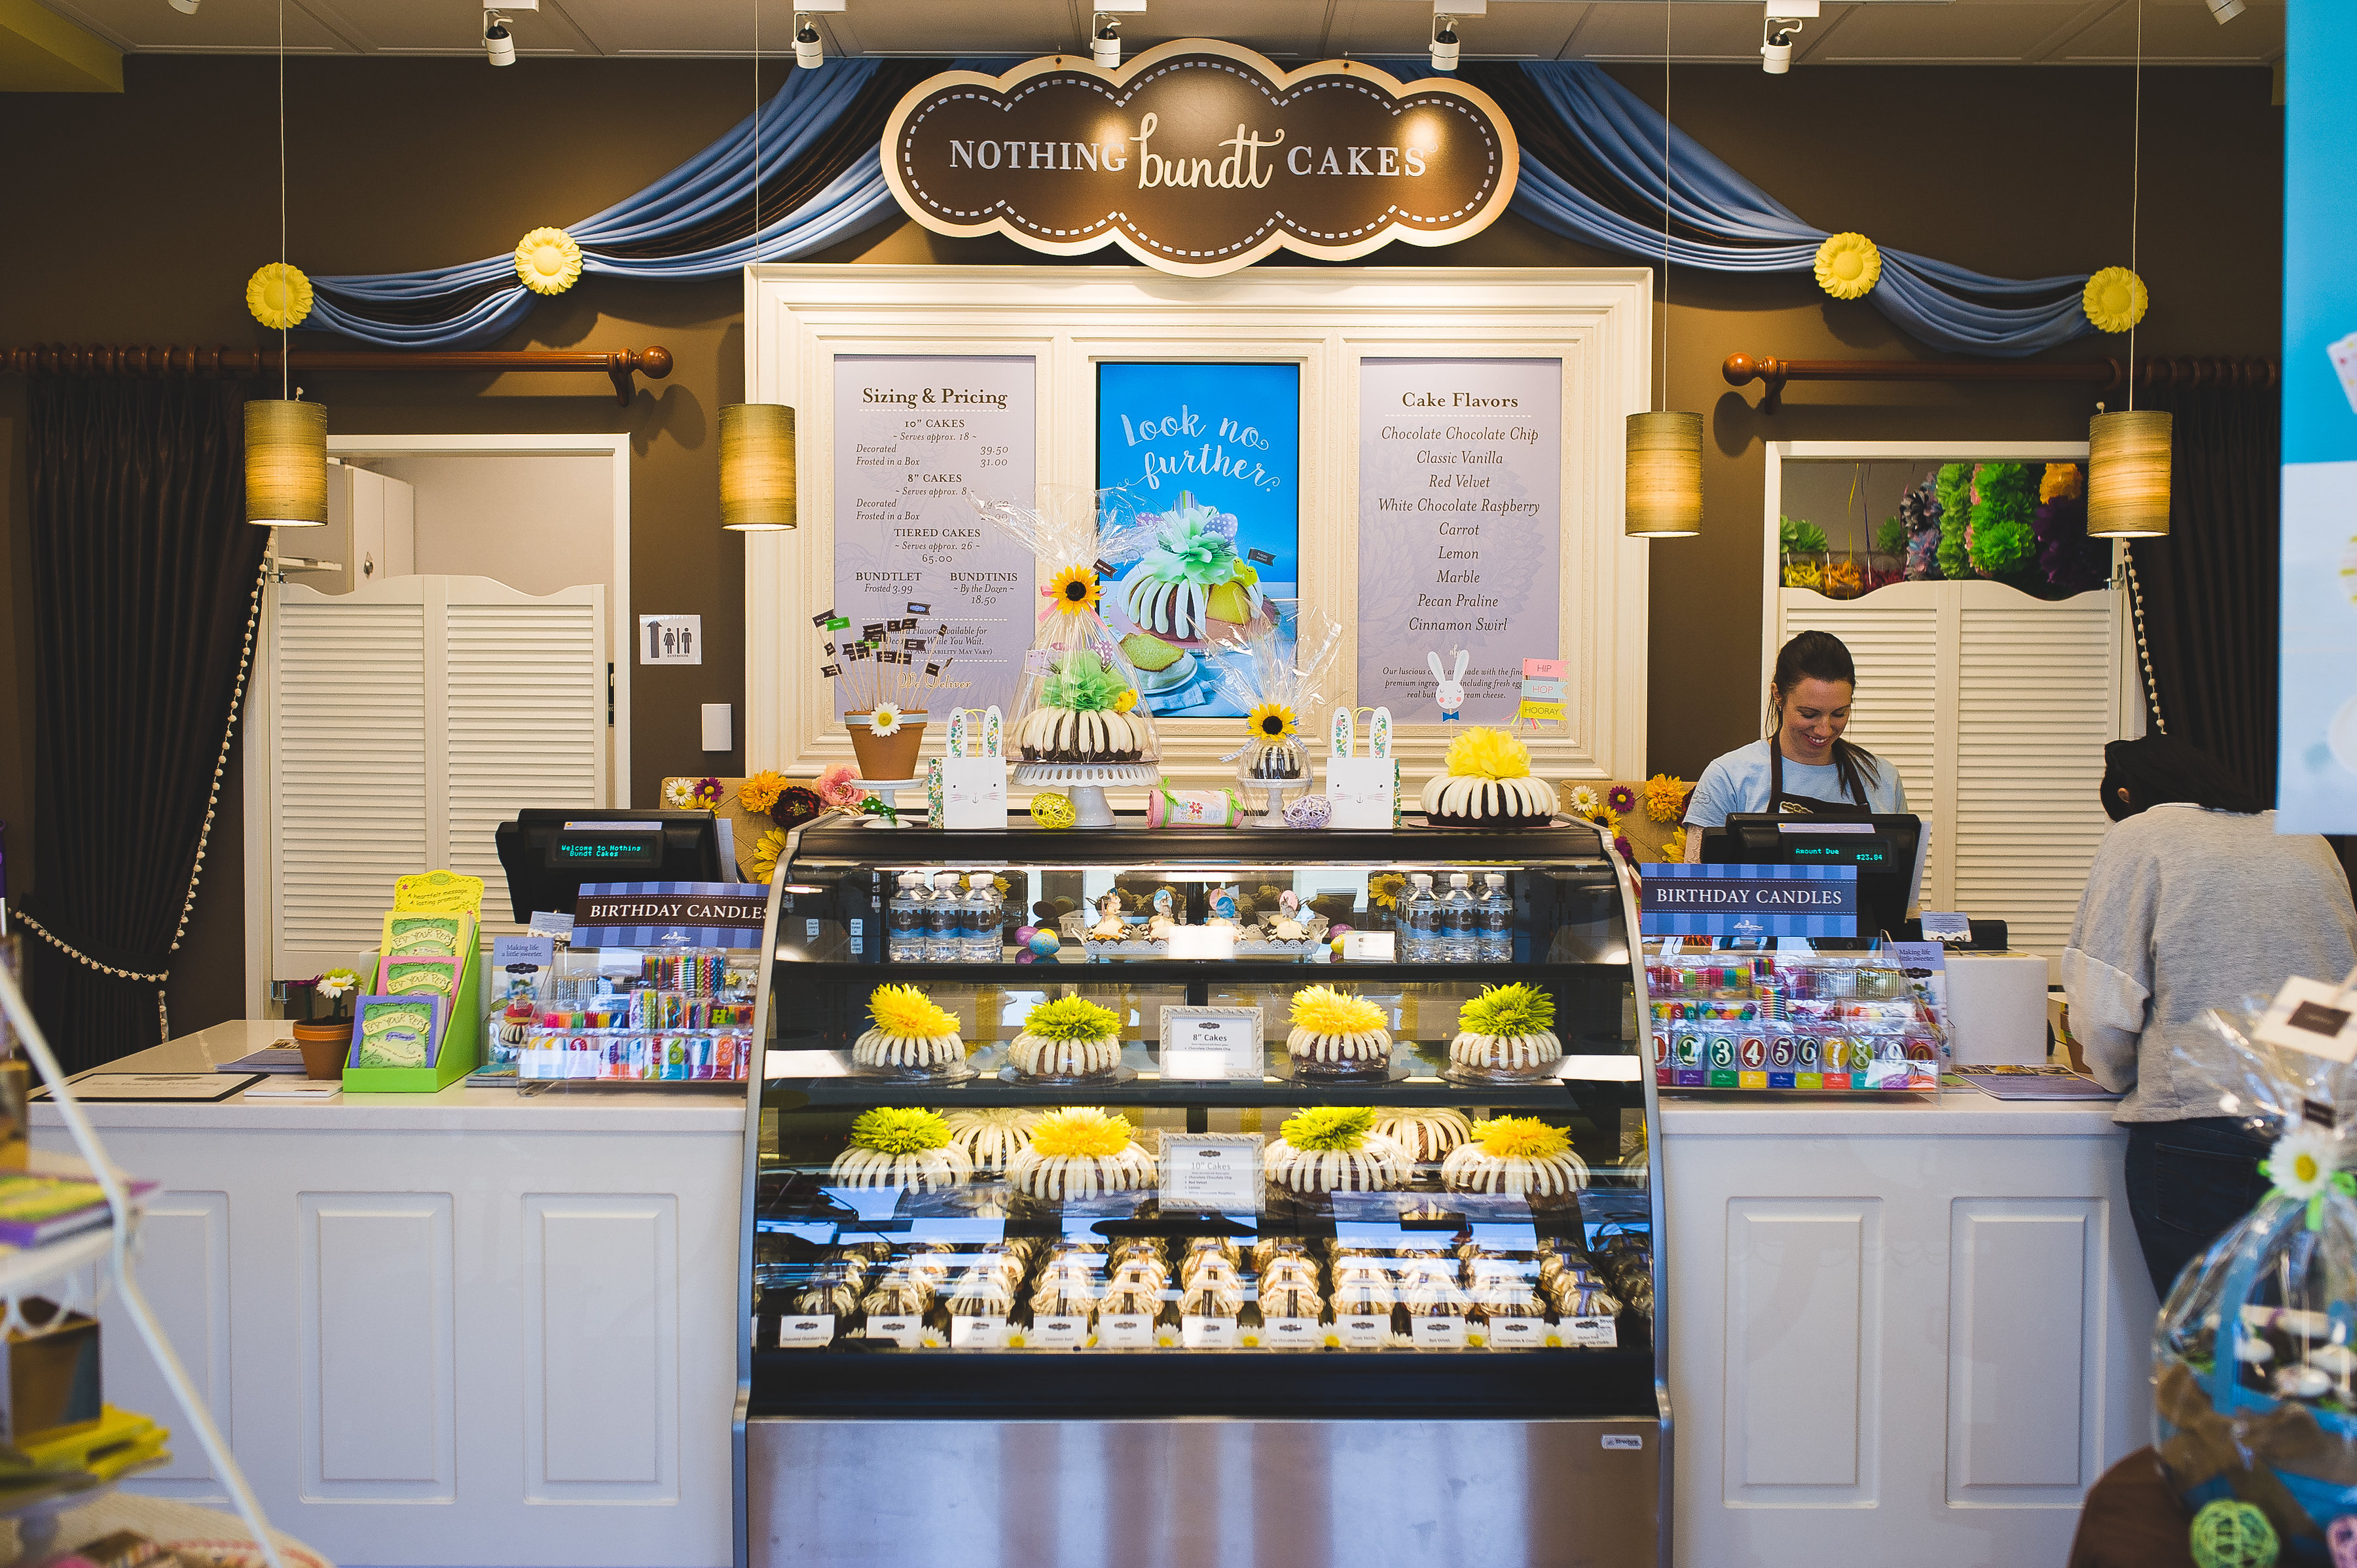 Nothing Bundt Cakes recently opened its 200th location in Grand Rapids, Michigan (Photo: Business Wire).